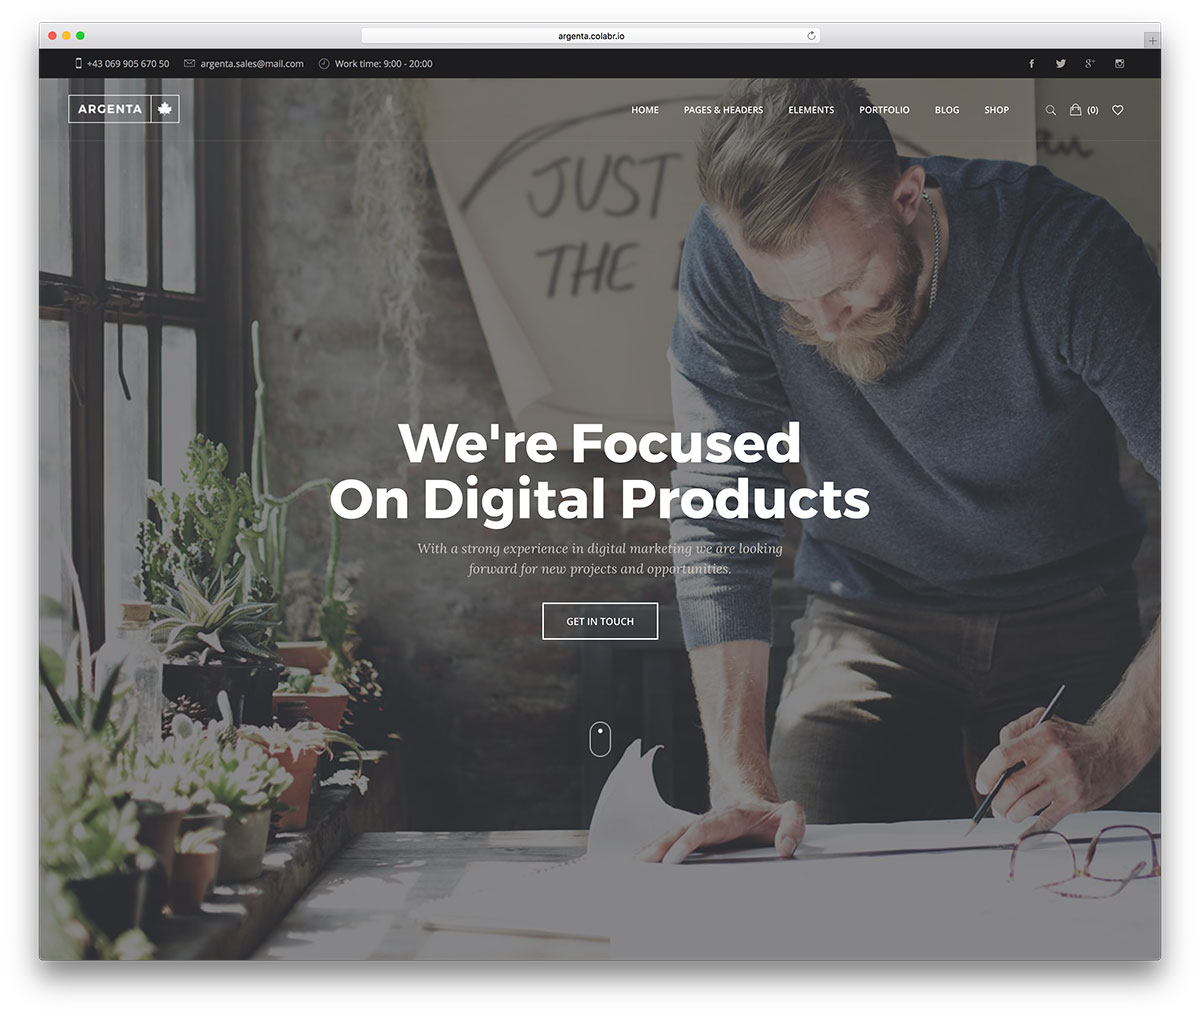 30 Best Full Screen Wordpress Themes 2018 Colorlib Download Power Point Backgrounds Mater Free Hd Argenta Is A Multipurpose Theme With Lots Of Specialized Demos It Has Very Responsive Design Premade Layouts And One Click Install